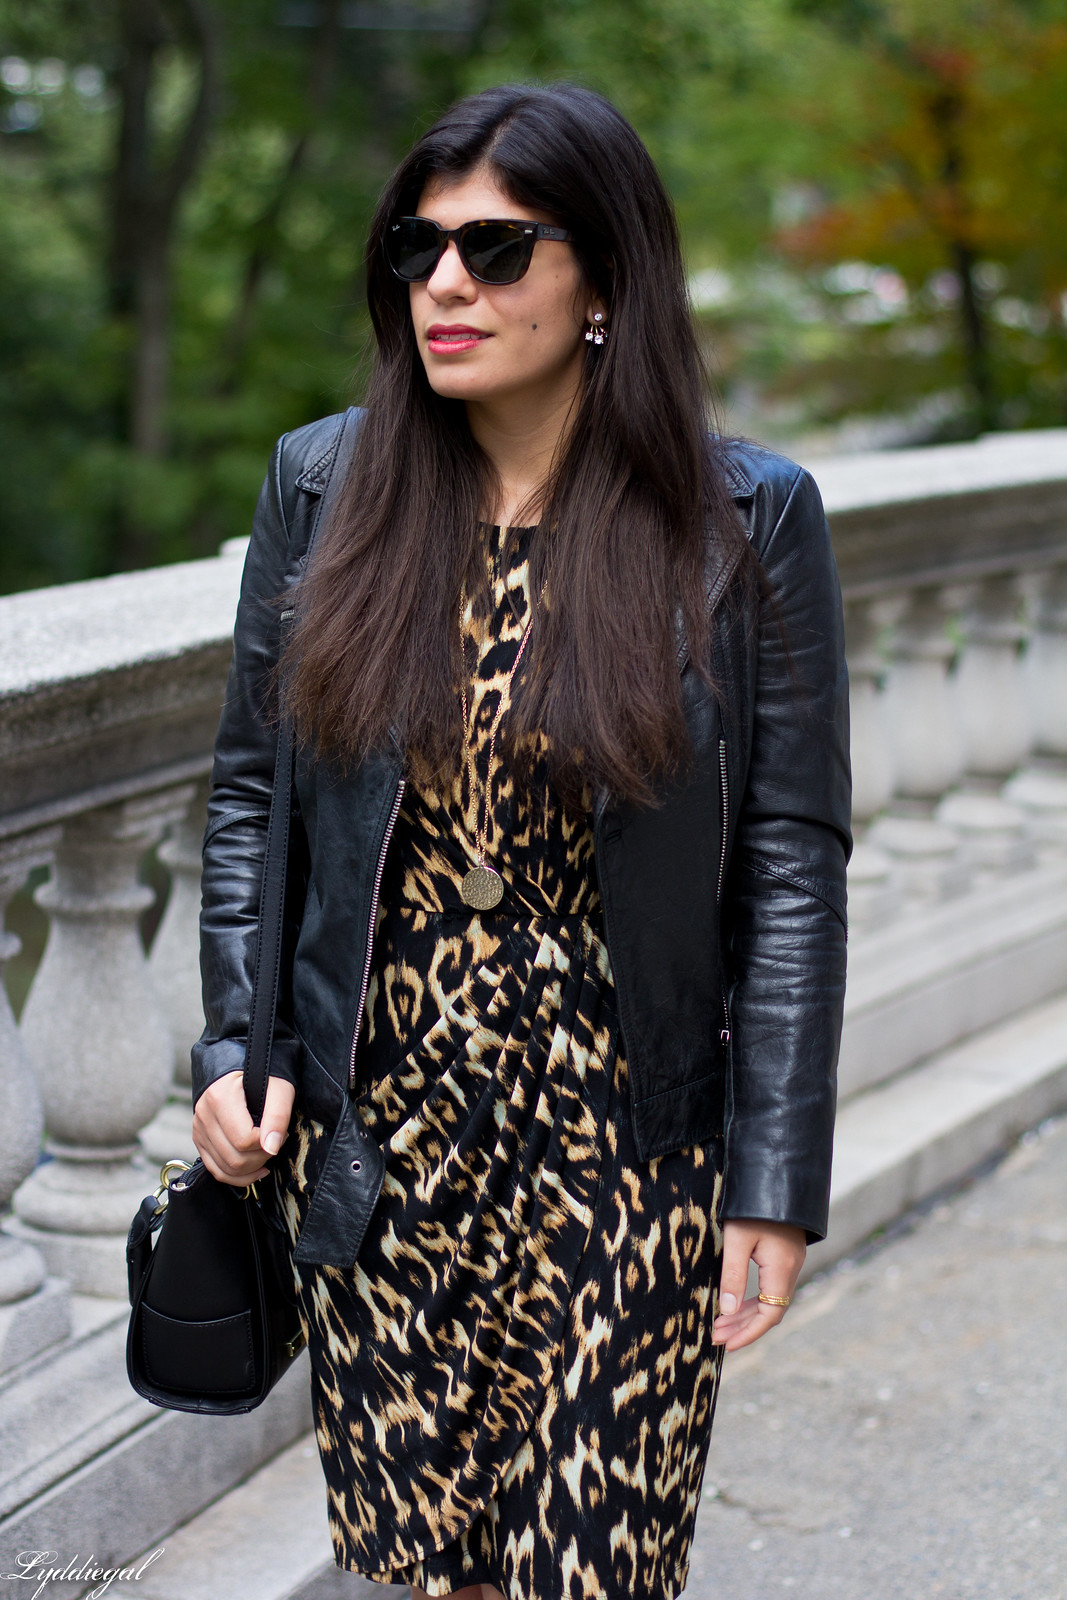 leopard dress, leather moto jacket, strappy heels-4.jpg